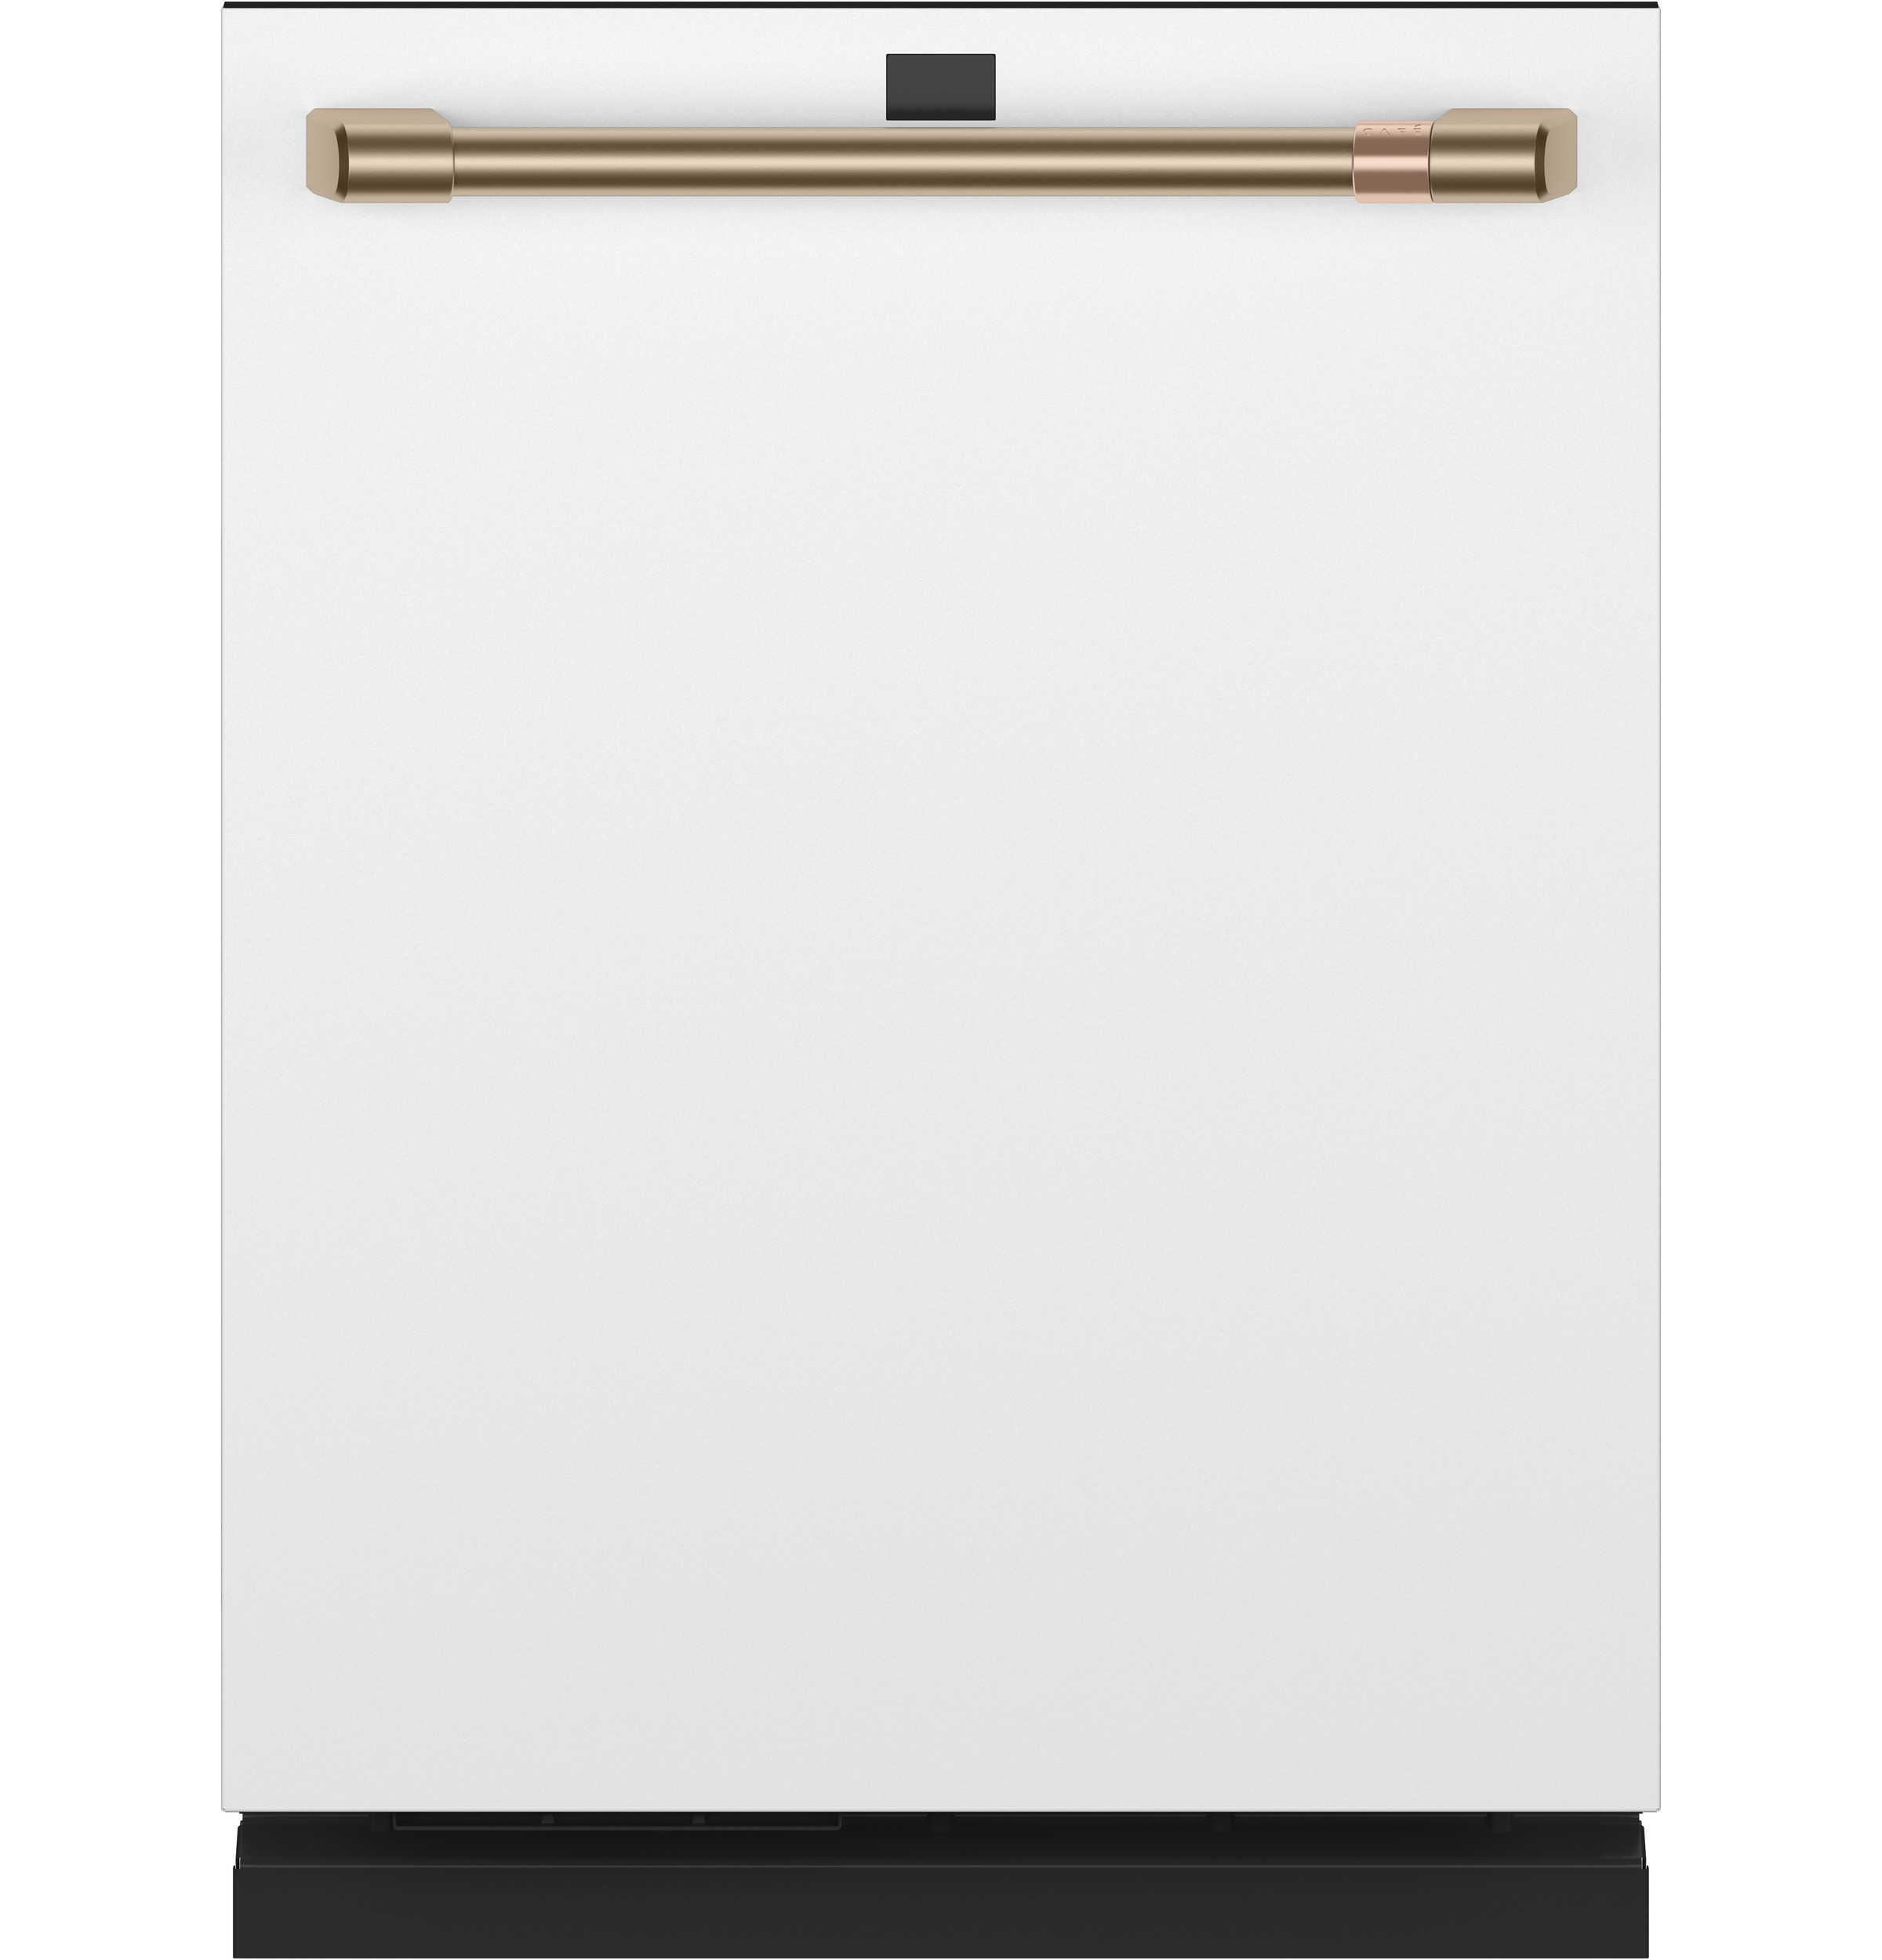 GE CAFE Dishwasher in White color showcased by Corbeil Electro Store